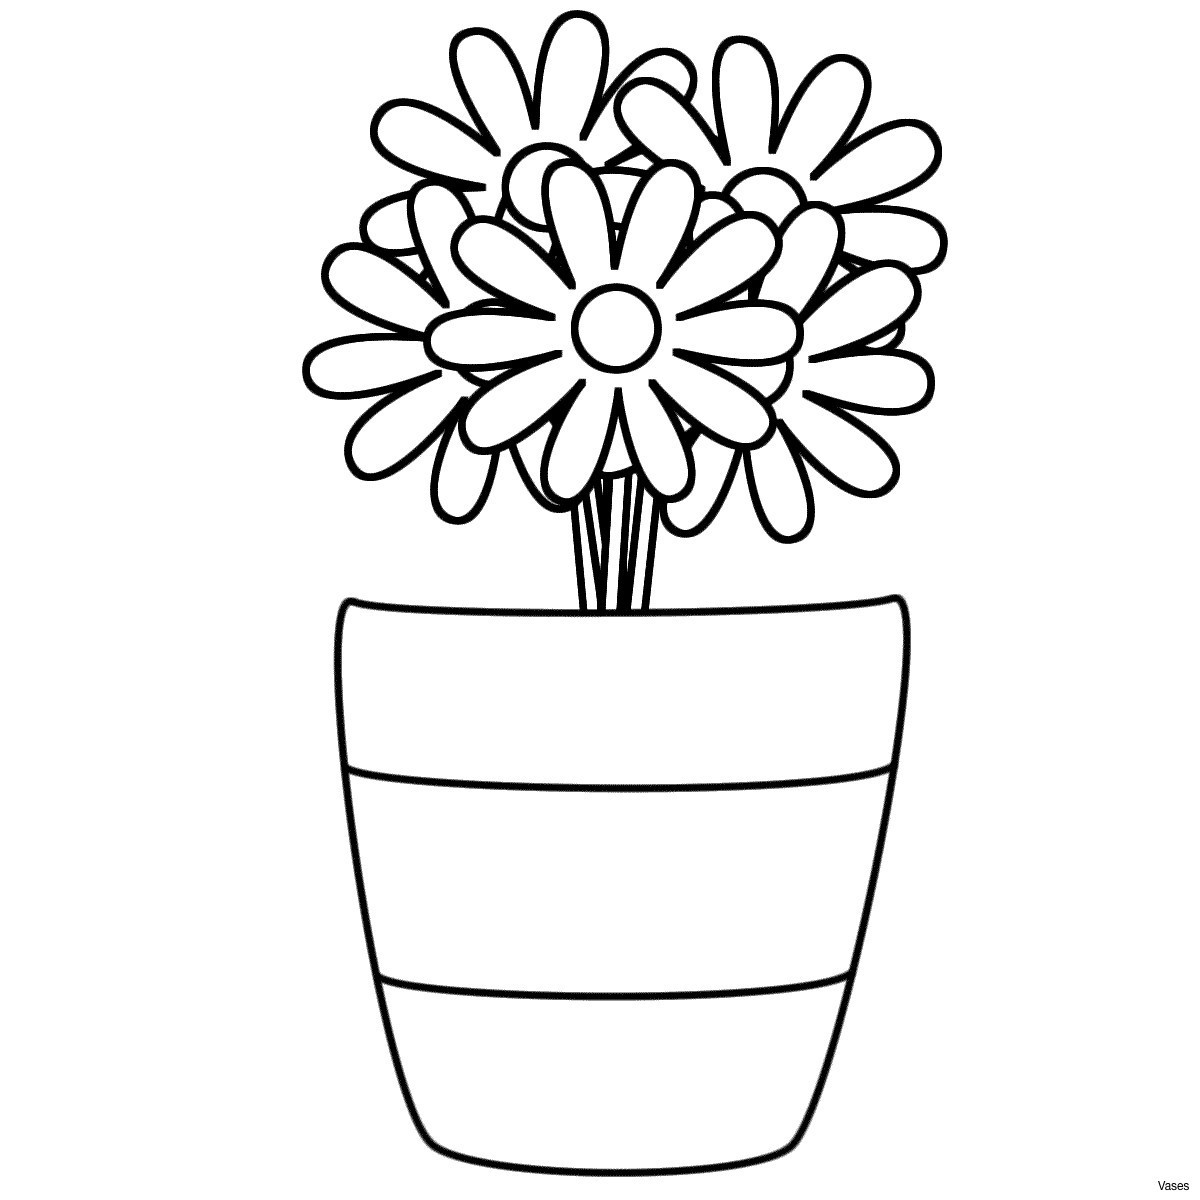 yellow rose vase of white flower cool images awesome cool vases flower vase coloring pertaining to cool vases flower vase coloring page pages flowers in a top i 0d